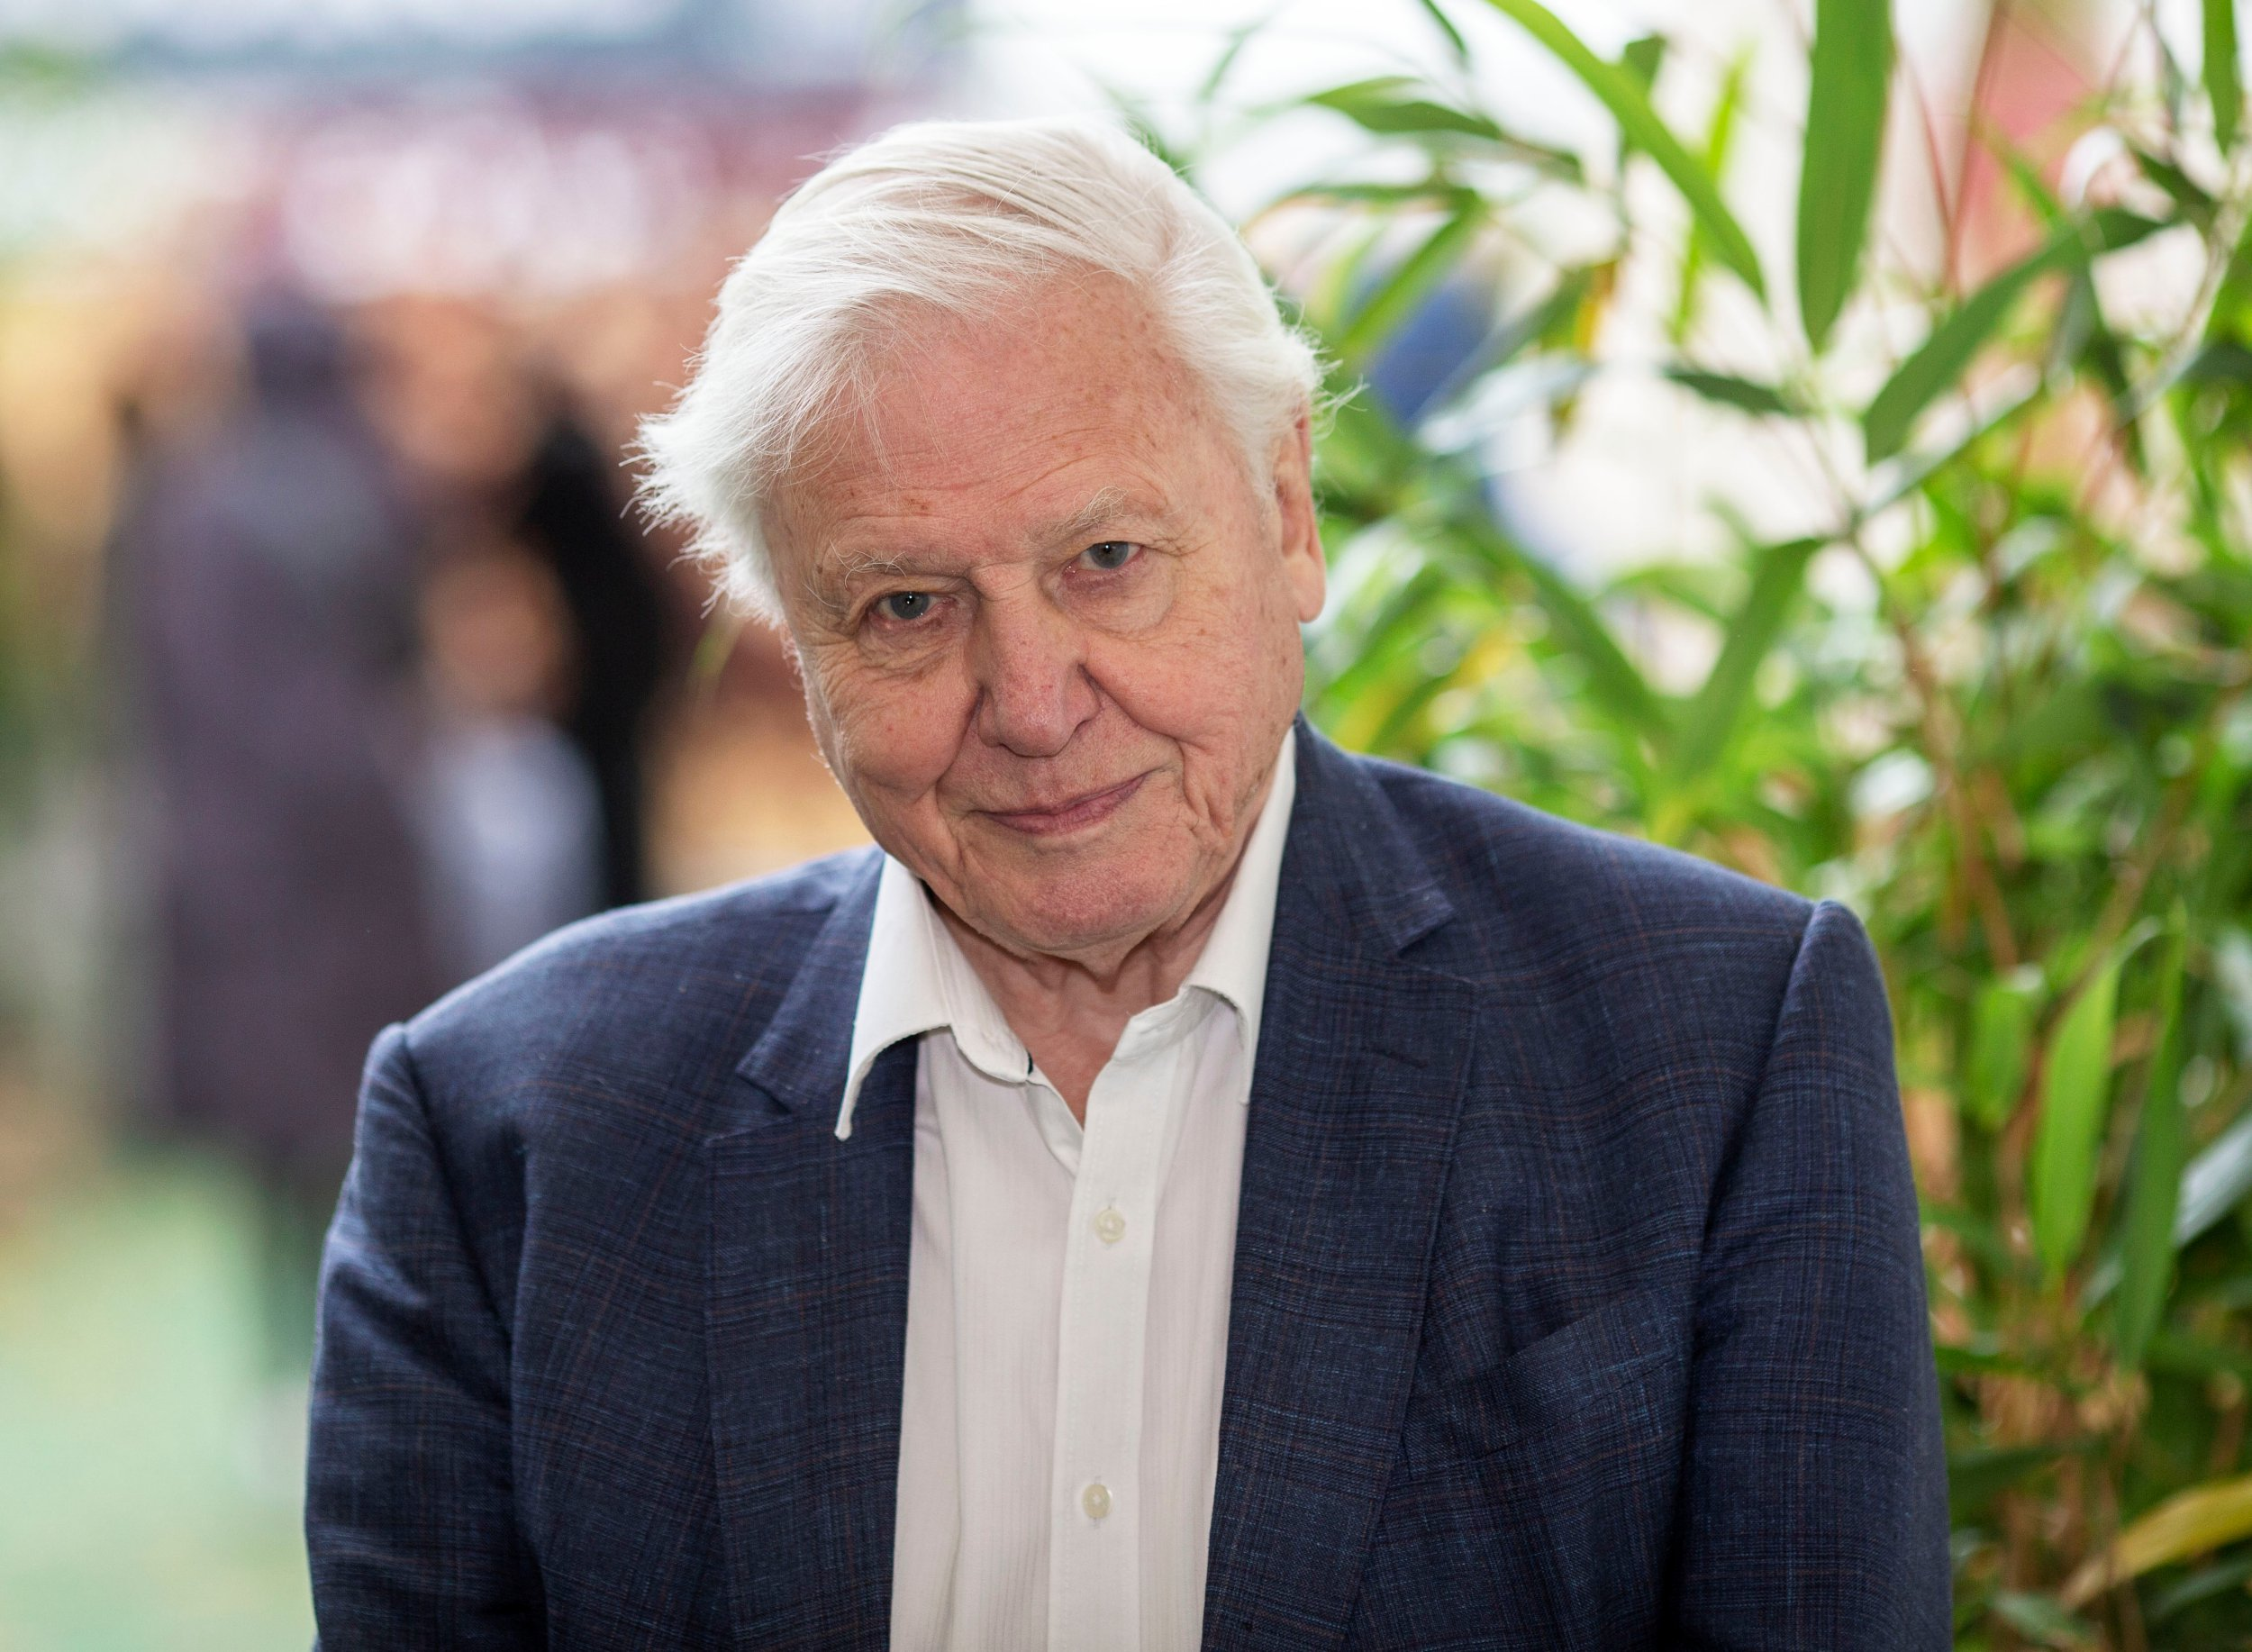 Sir David Attenborough makes desperate plea to end climate change ahead of Netflix's Our Planet and addresses future on the BBC